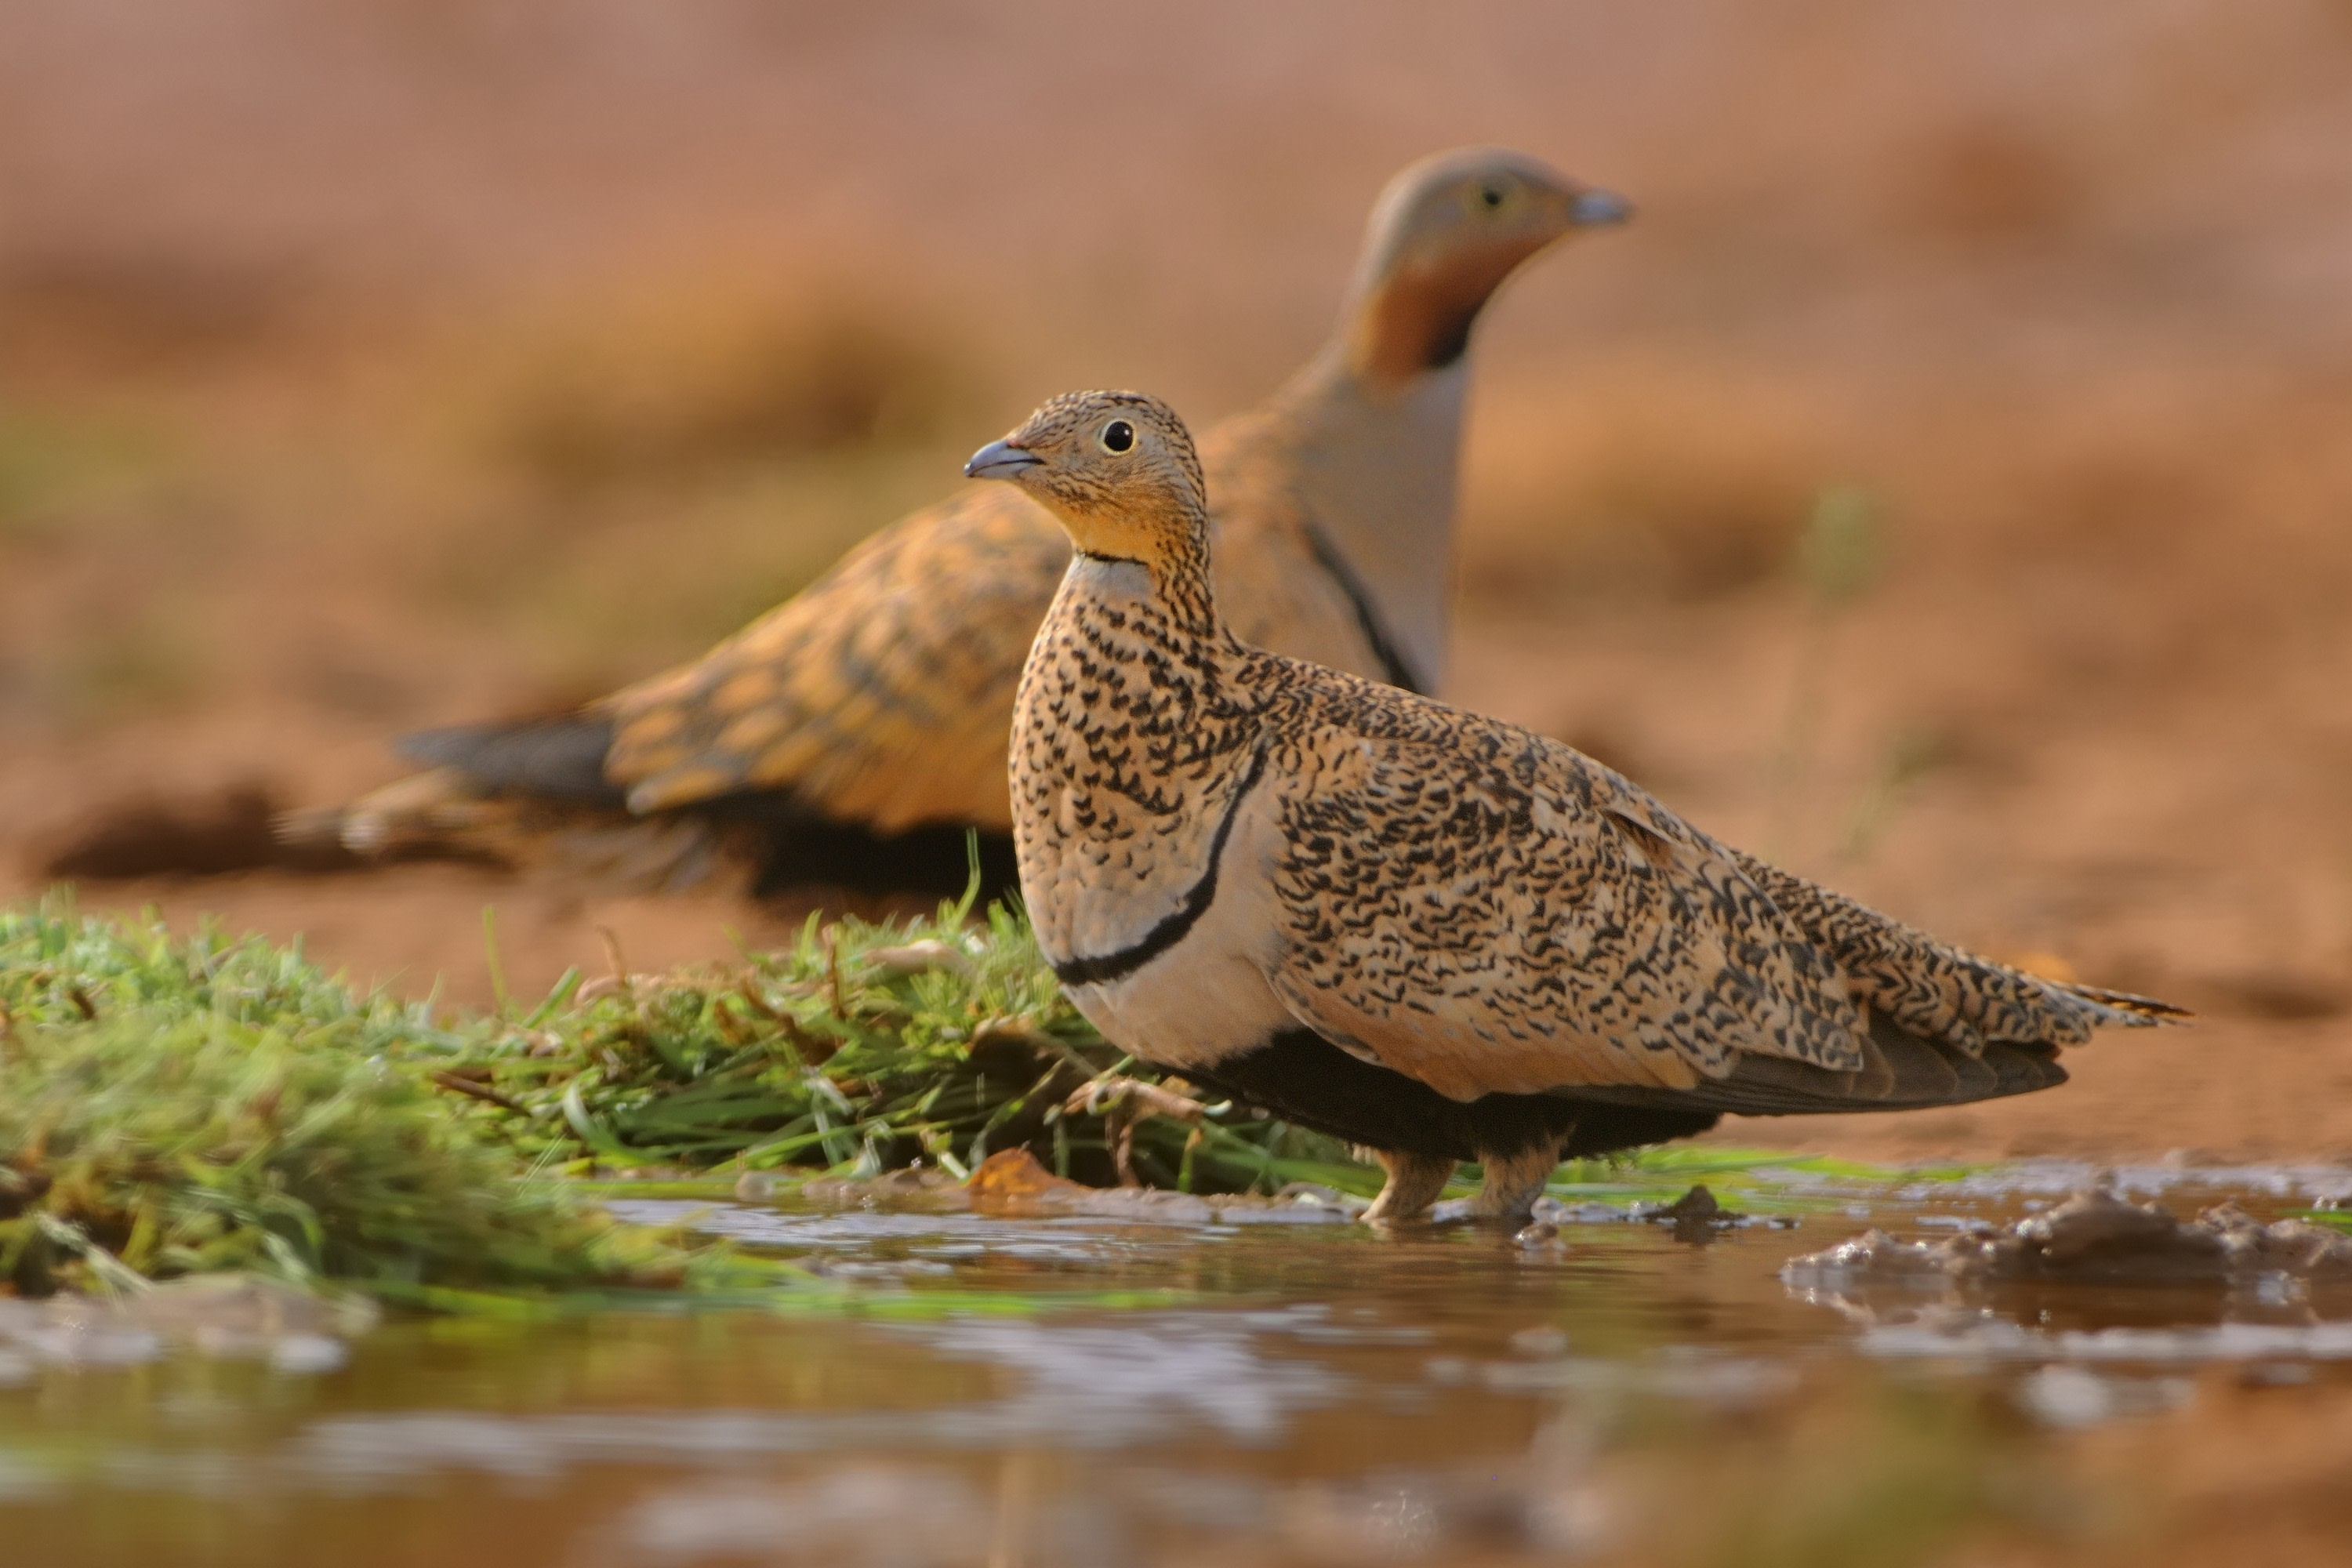 A medium-sized bird resembling a pigeon, the black-bellied sandgrouse (earlier known as the imperial sandgrouse) was much sought after by hunters during the British era. Photo: Martin Pelanek/Shutterstock